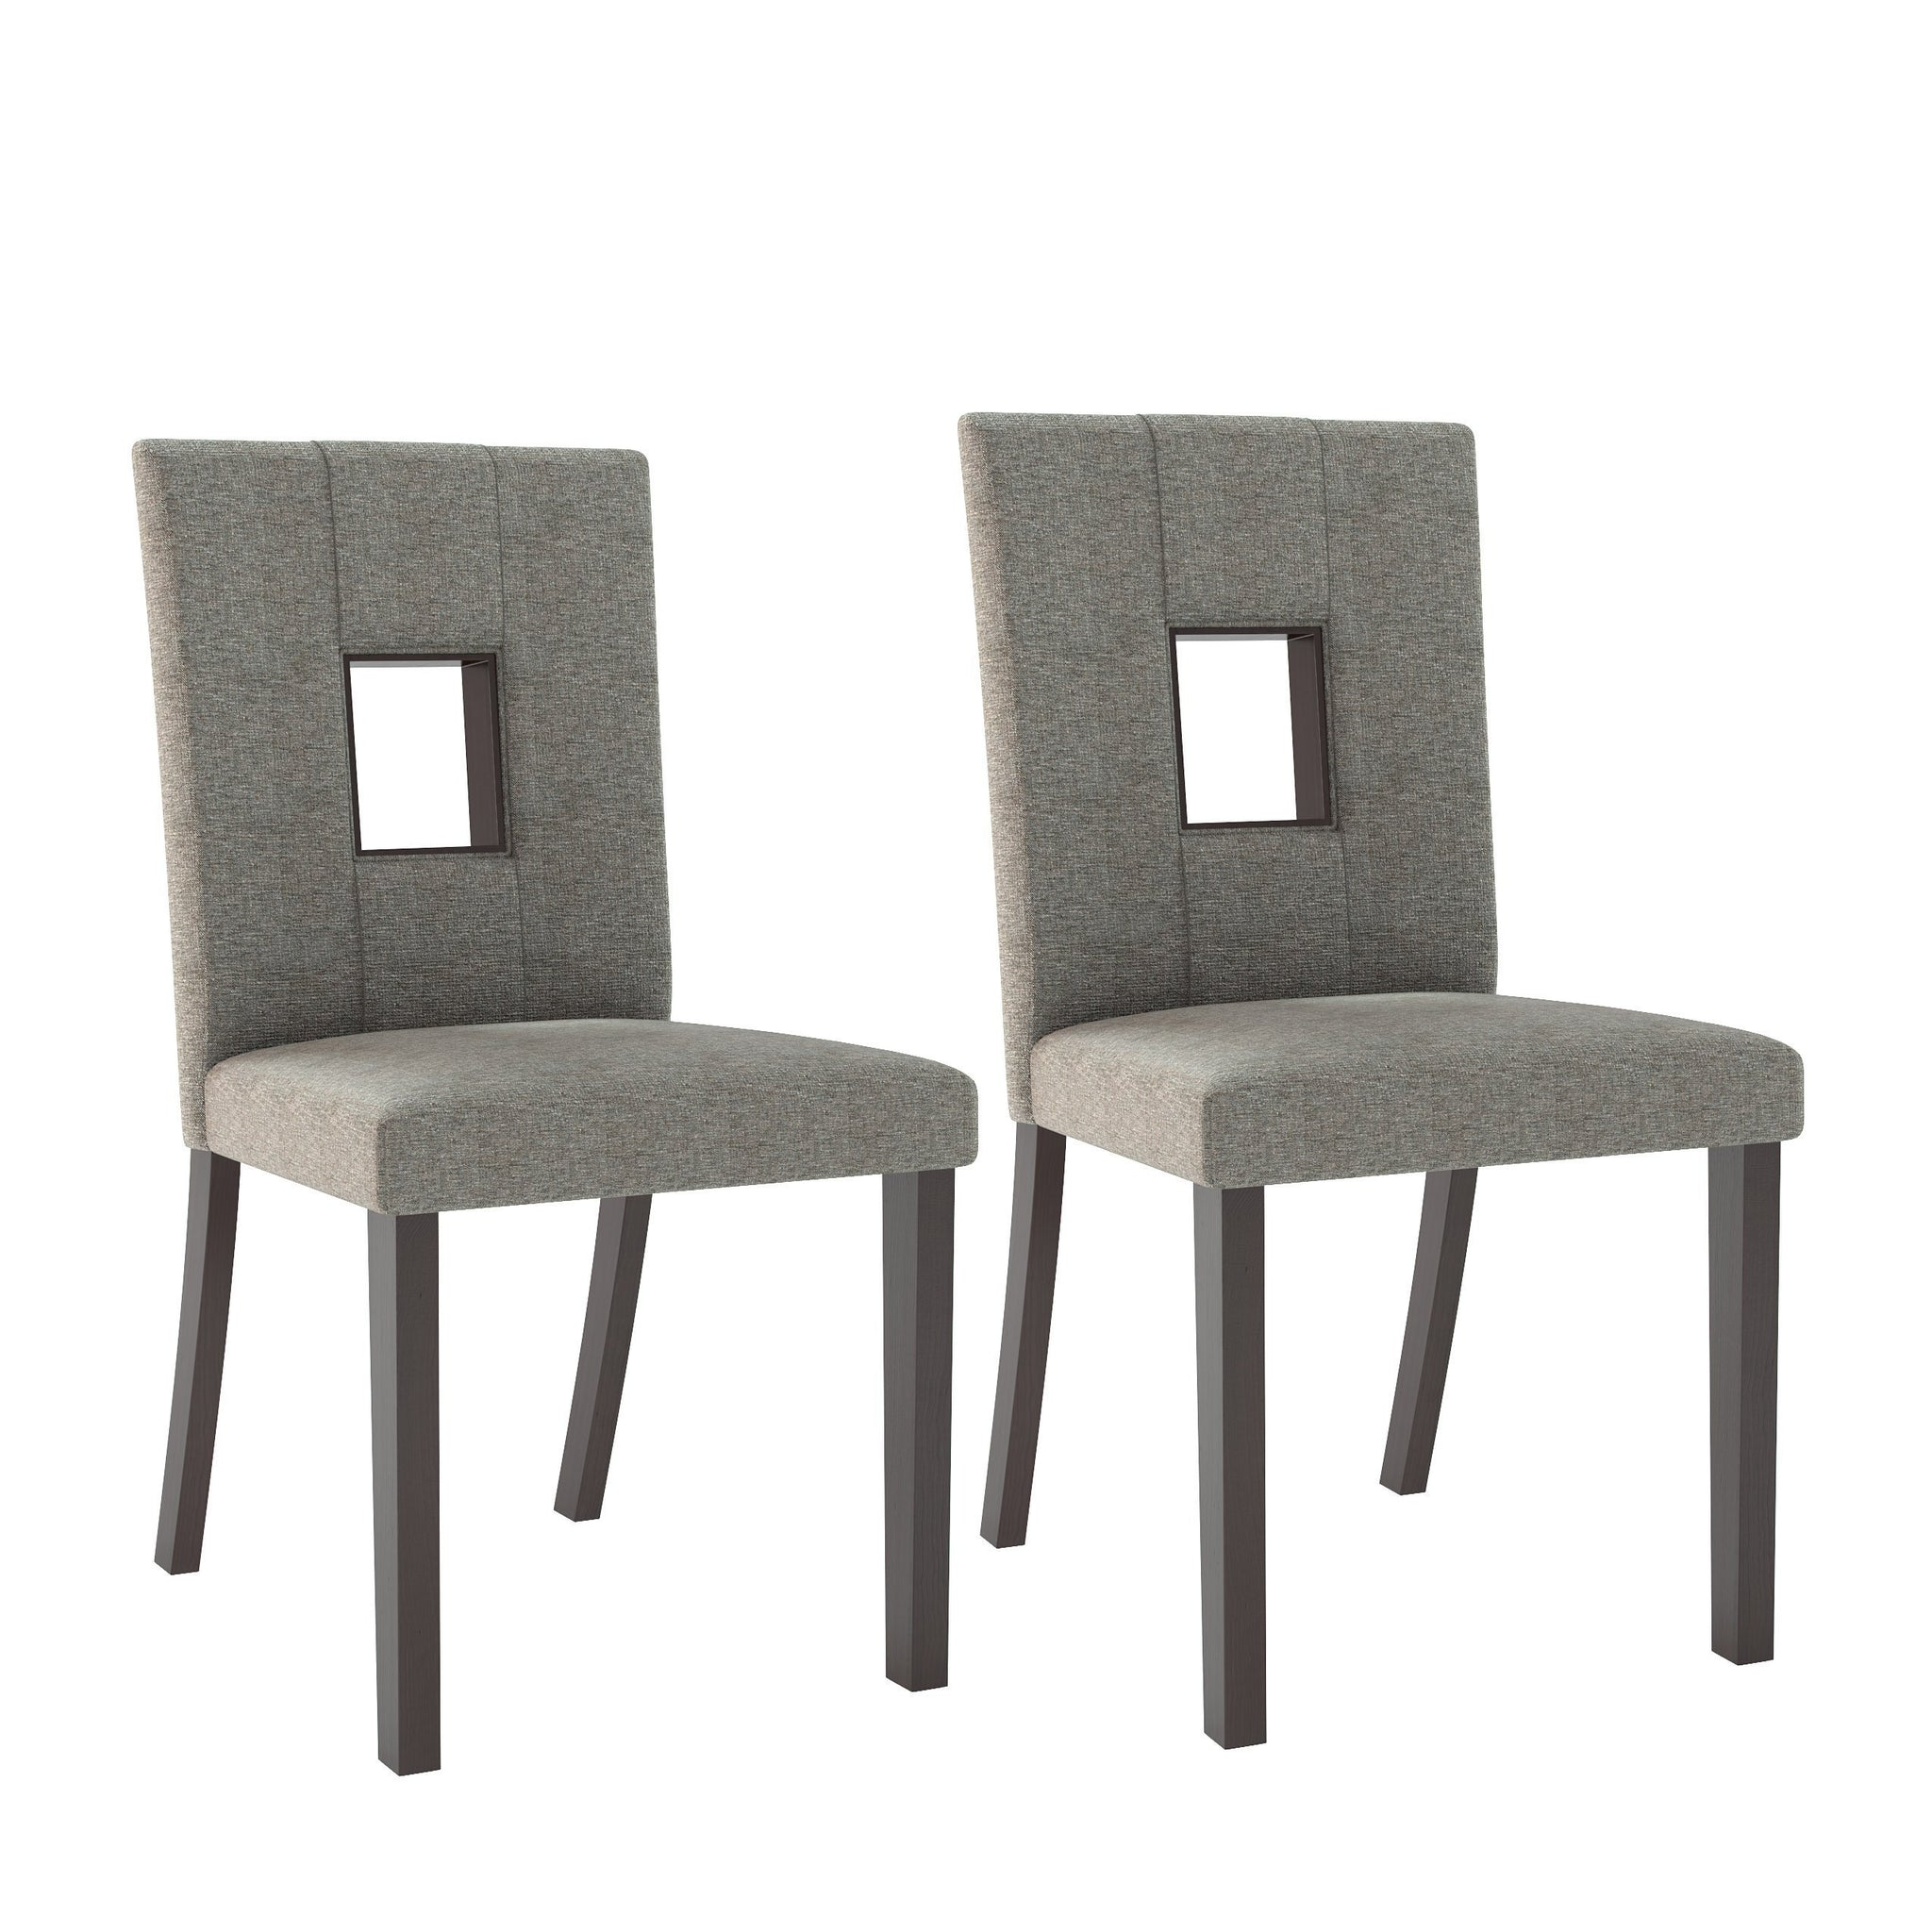 Fabric Dining Height Dining Chairs, Set of 2 - *CLEARANCE*